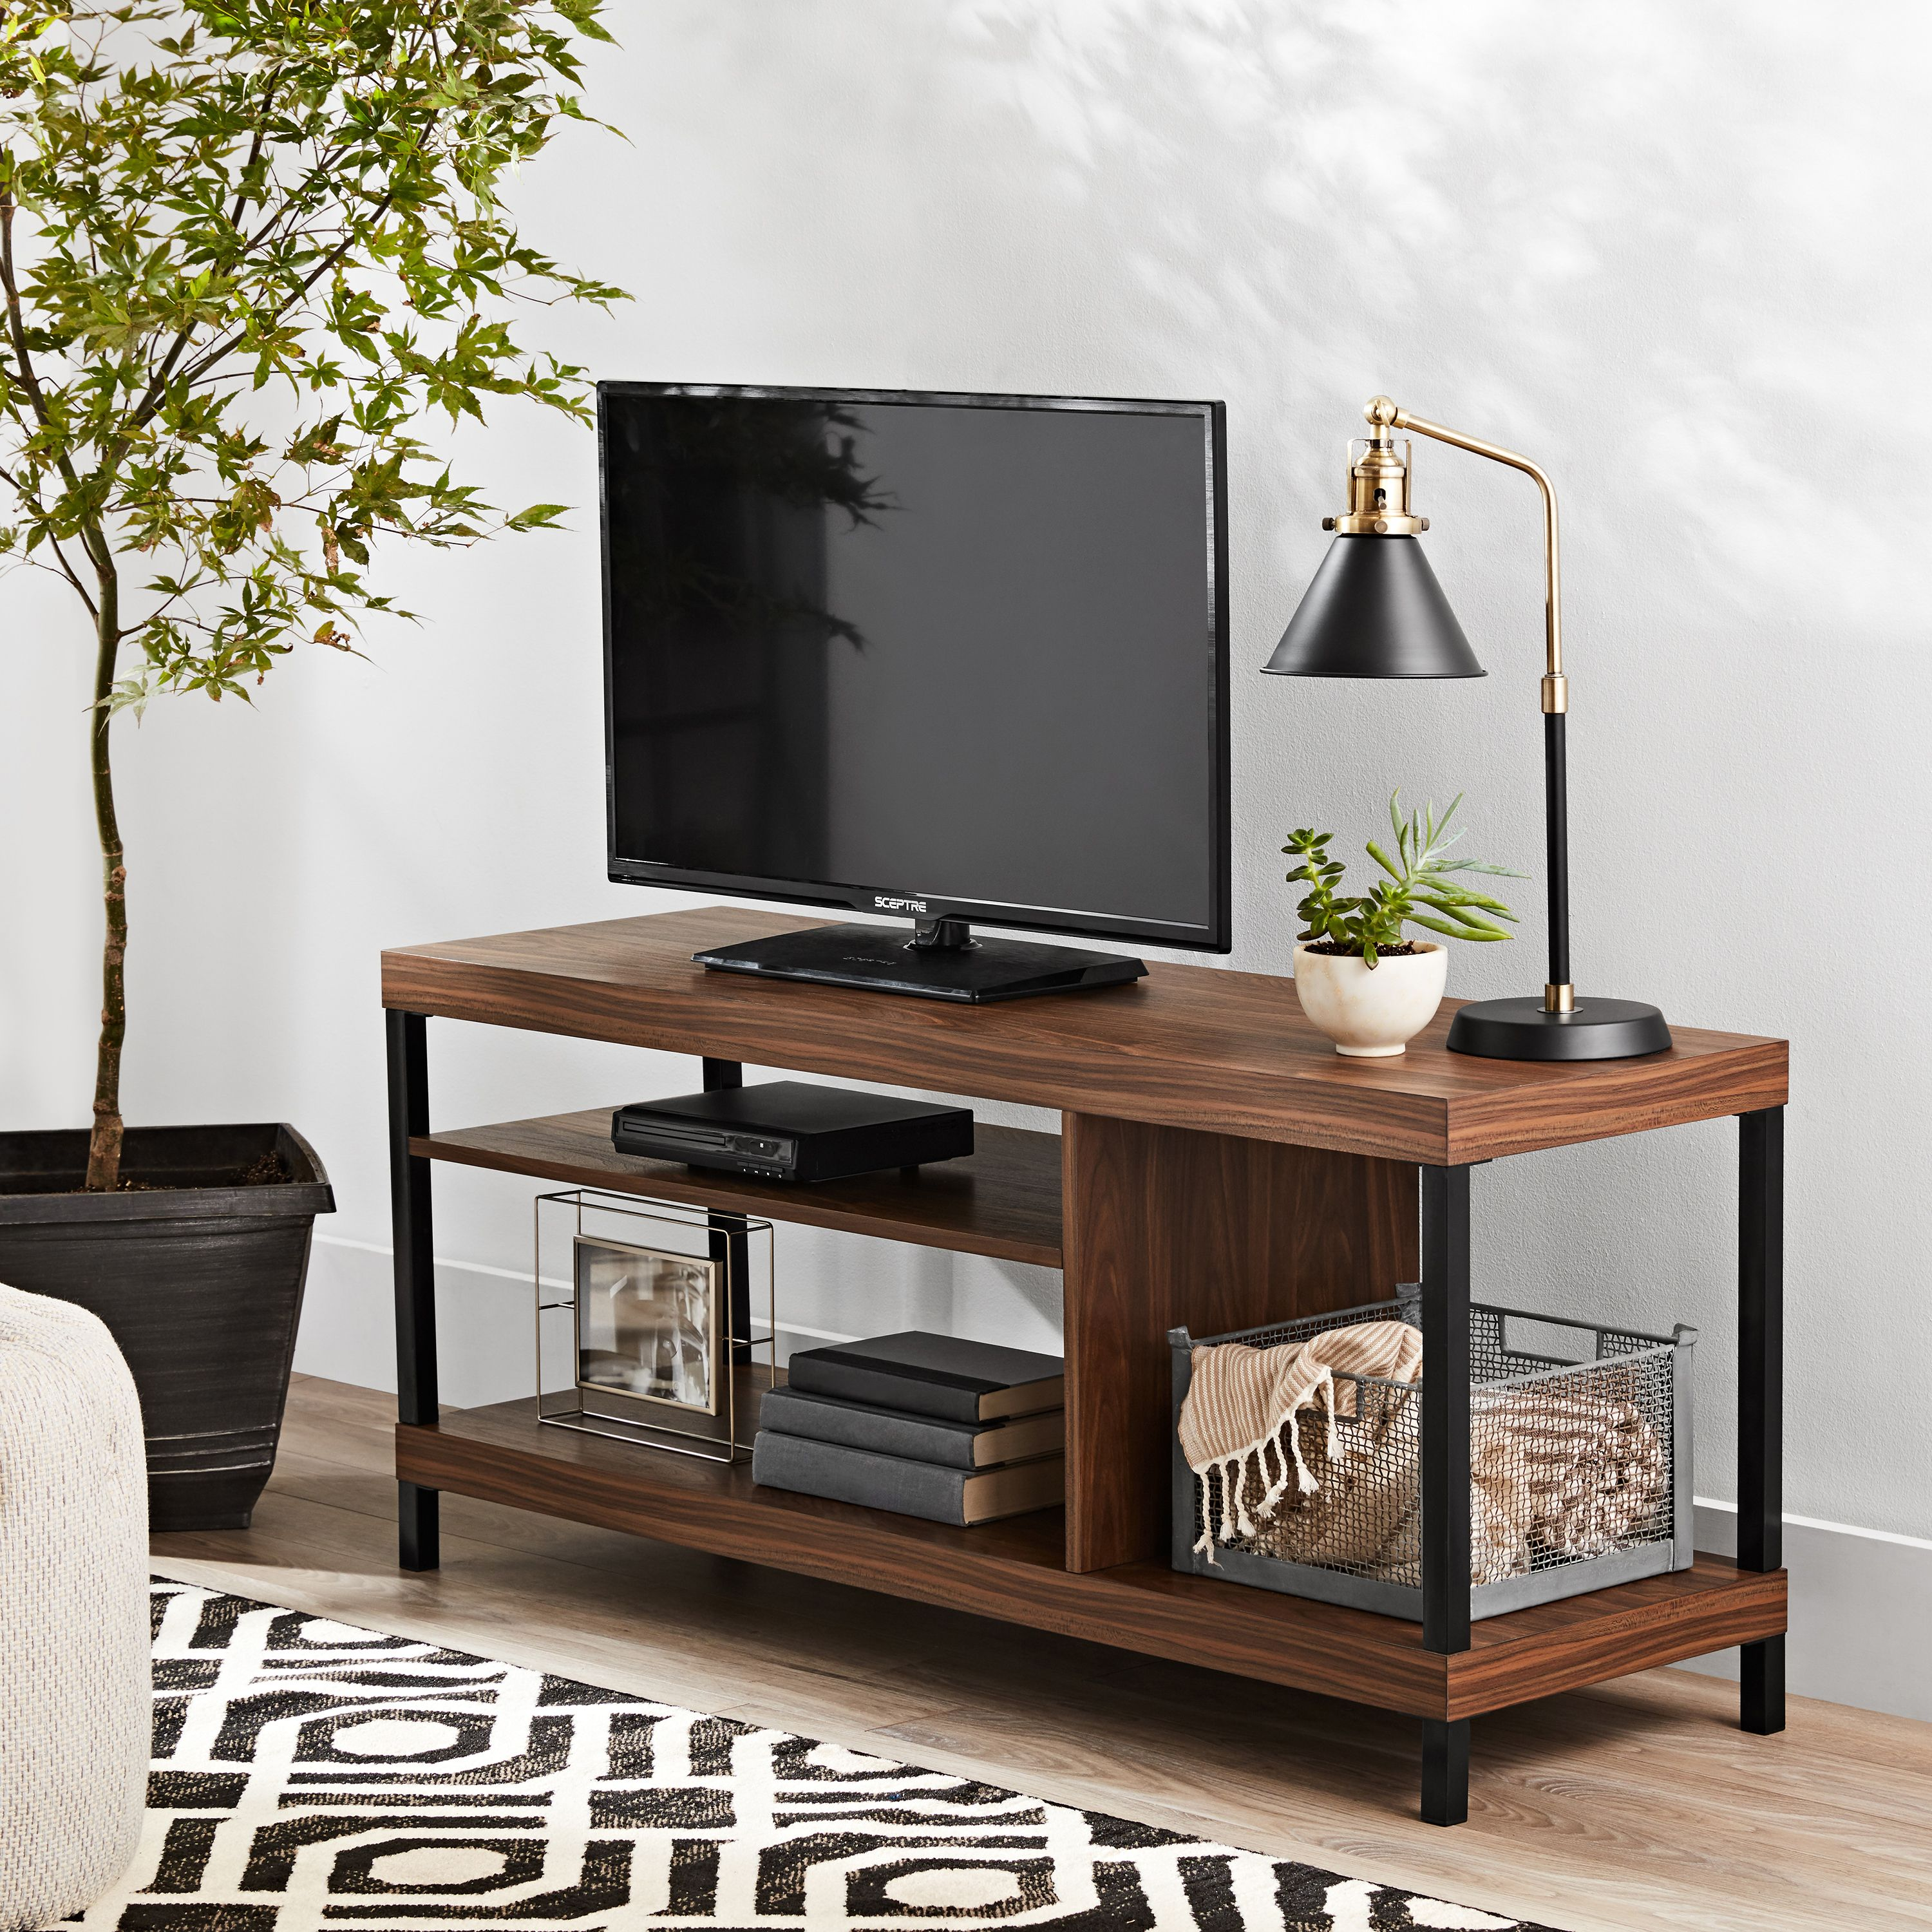 MAINSTAYS SUMPTER PARK TV STAND FOR TV`S UP TO 42``